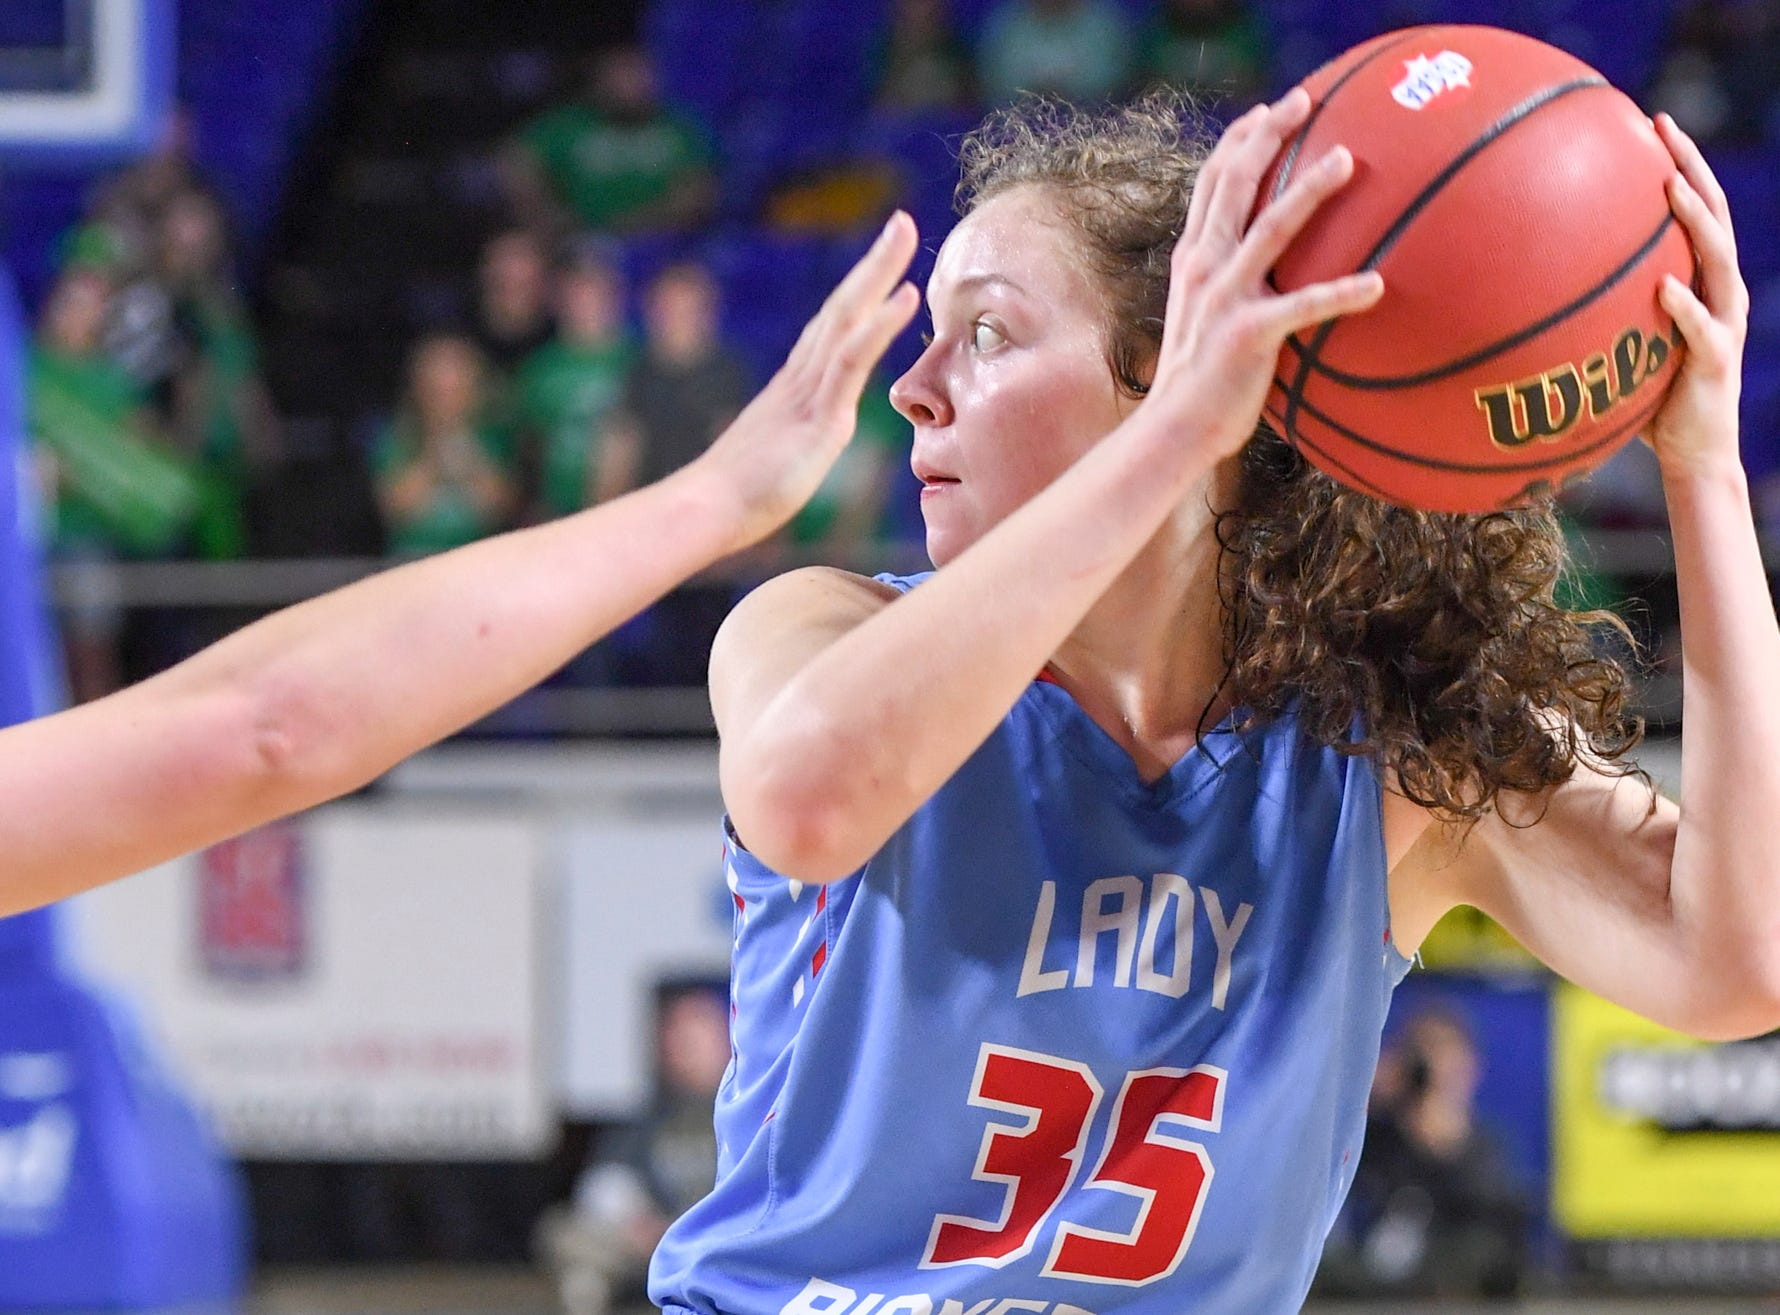 Gibson County's Hannah Ball (35) looks to pass the ball as a Midway defender puts her hand in her face during their Class A semifinal game, Friday, March 8, 2019, in  Murfreesboro. Gibson County defeated Midway, 75-61.